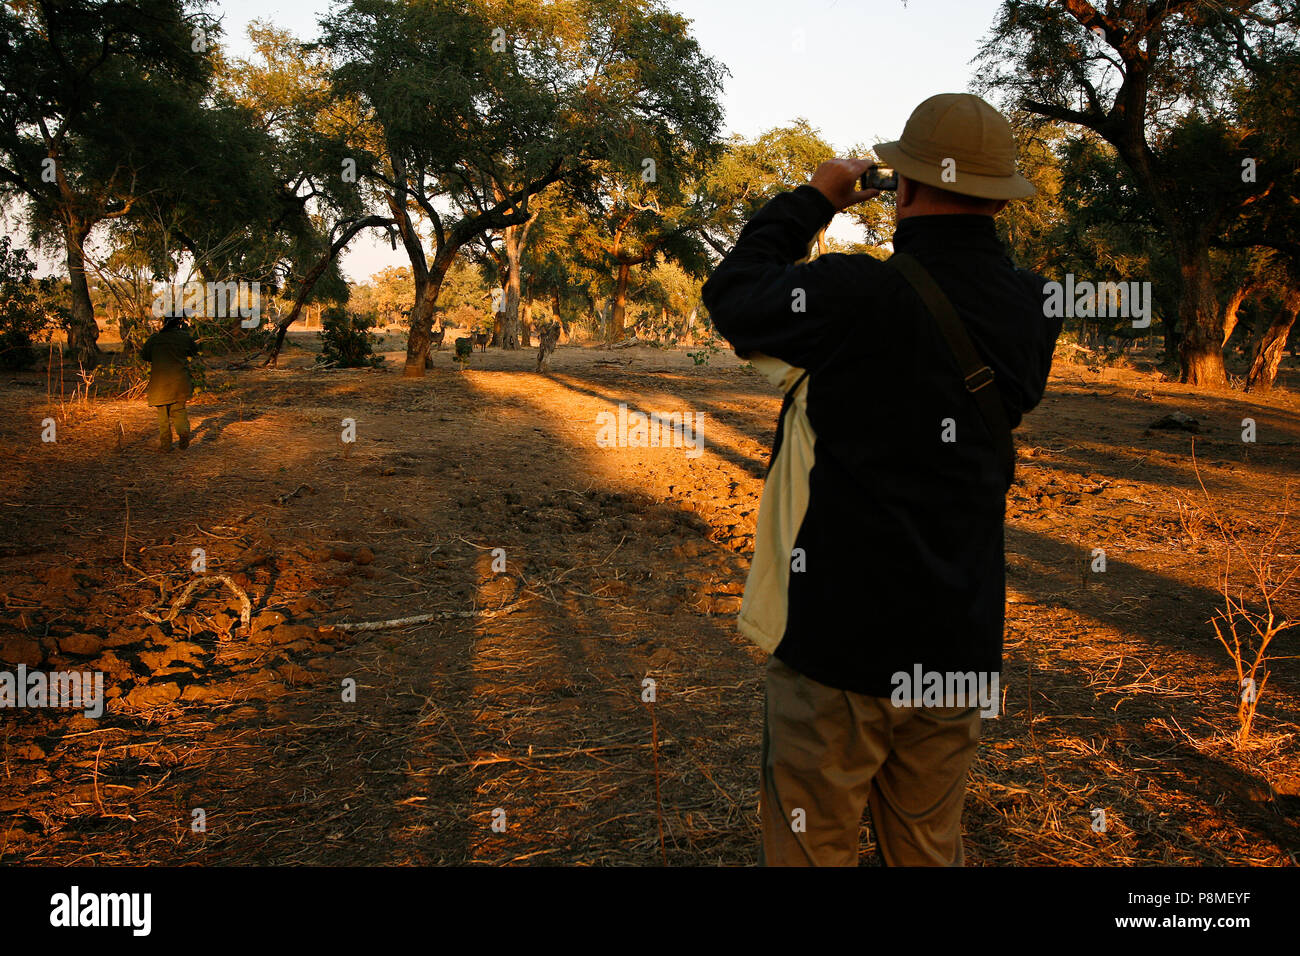 Park Ranger and Tourists on Walking Safari. Mana Pools National Park. Zimbabwe - Stock Image